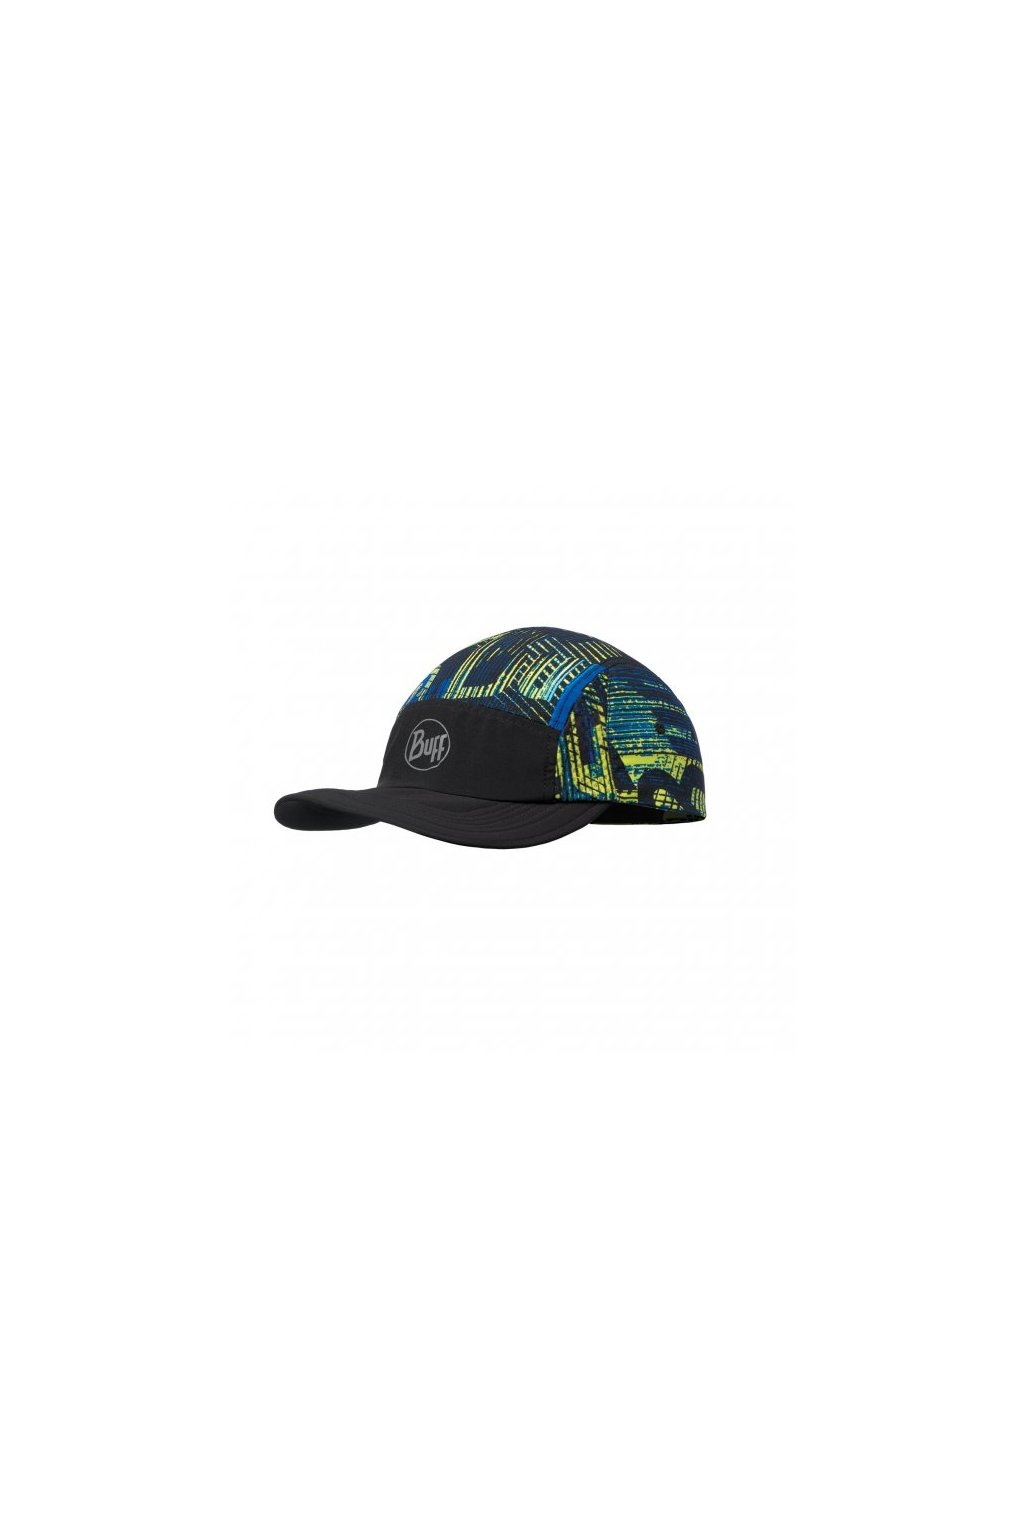 reflective run cap r effect logo multi 1194915551000